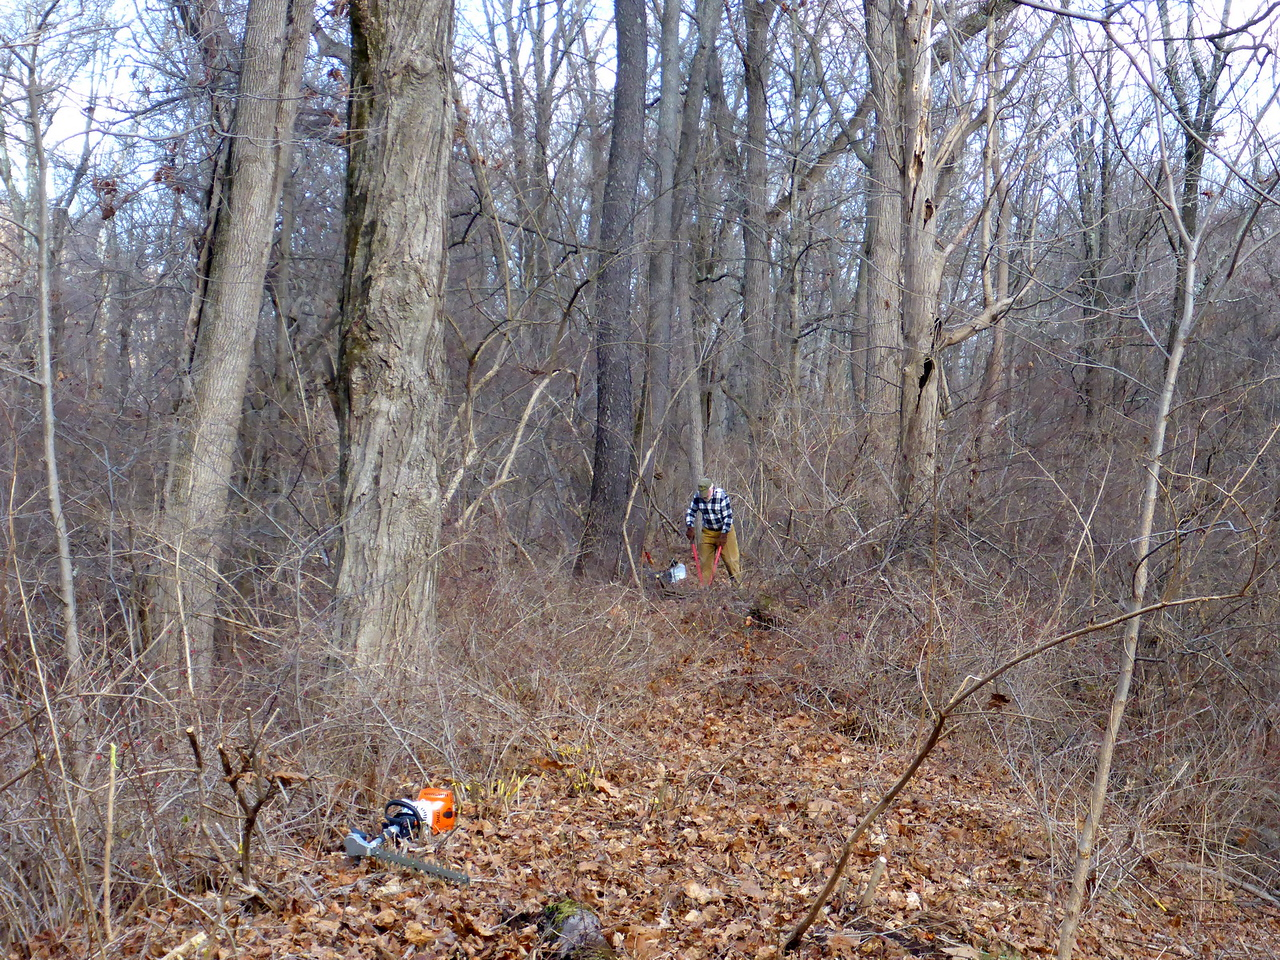 Bob Barth clearing the towpath (12/15/15).